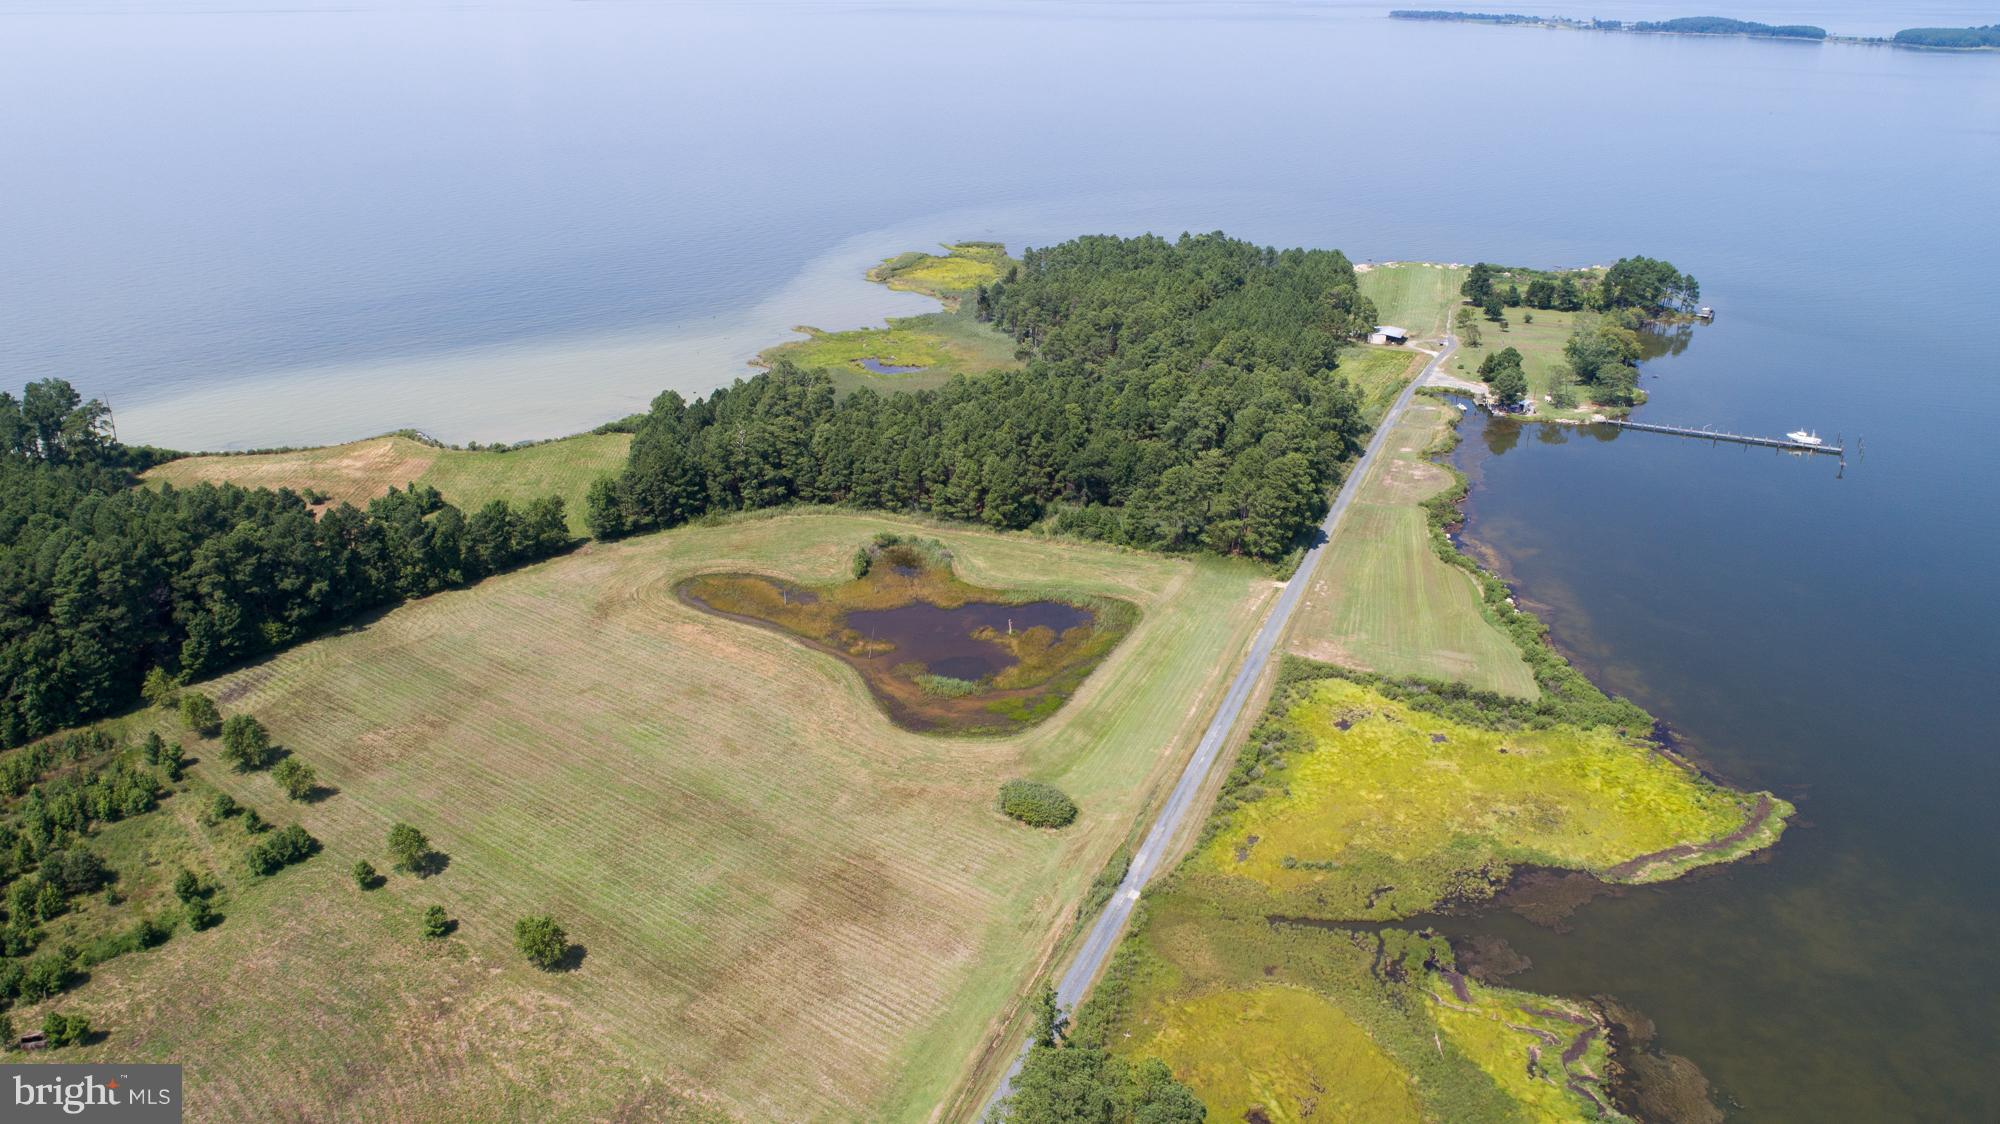 Spectacular Waterfront Lot on 11.4 acres with Views from almost every direction.  Come build your dream home on this private waterfront oasis.   SRA Recorded.  Property has water frontage on both the Chesapeake Bay and Brannocks Bay.  Abundant wildlife.